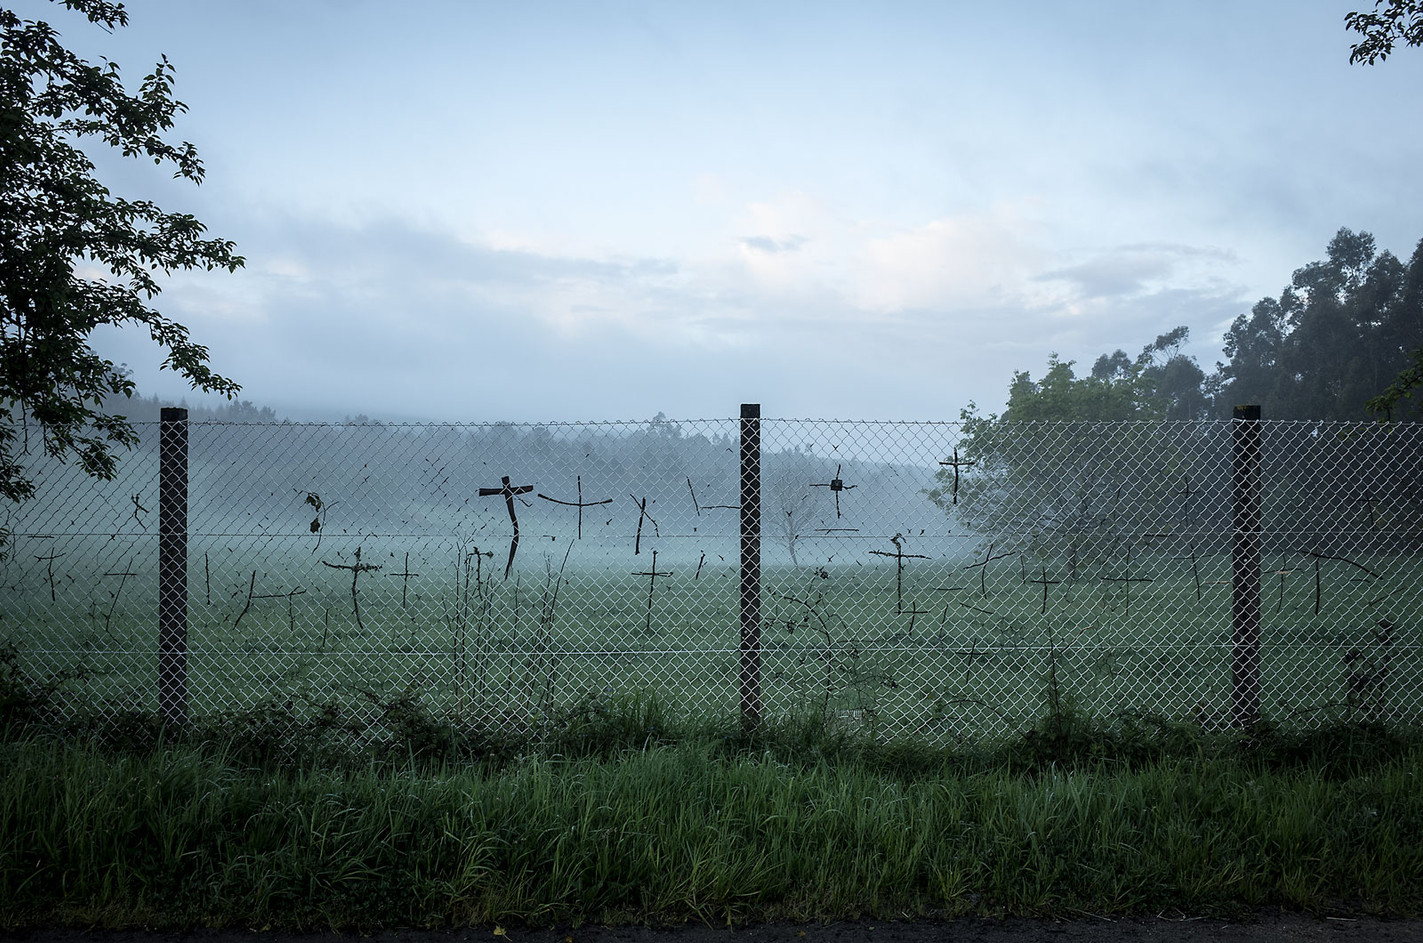 Fences along the Camino often display crosses made of sticks placed there by passing pilgrims.